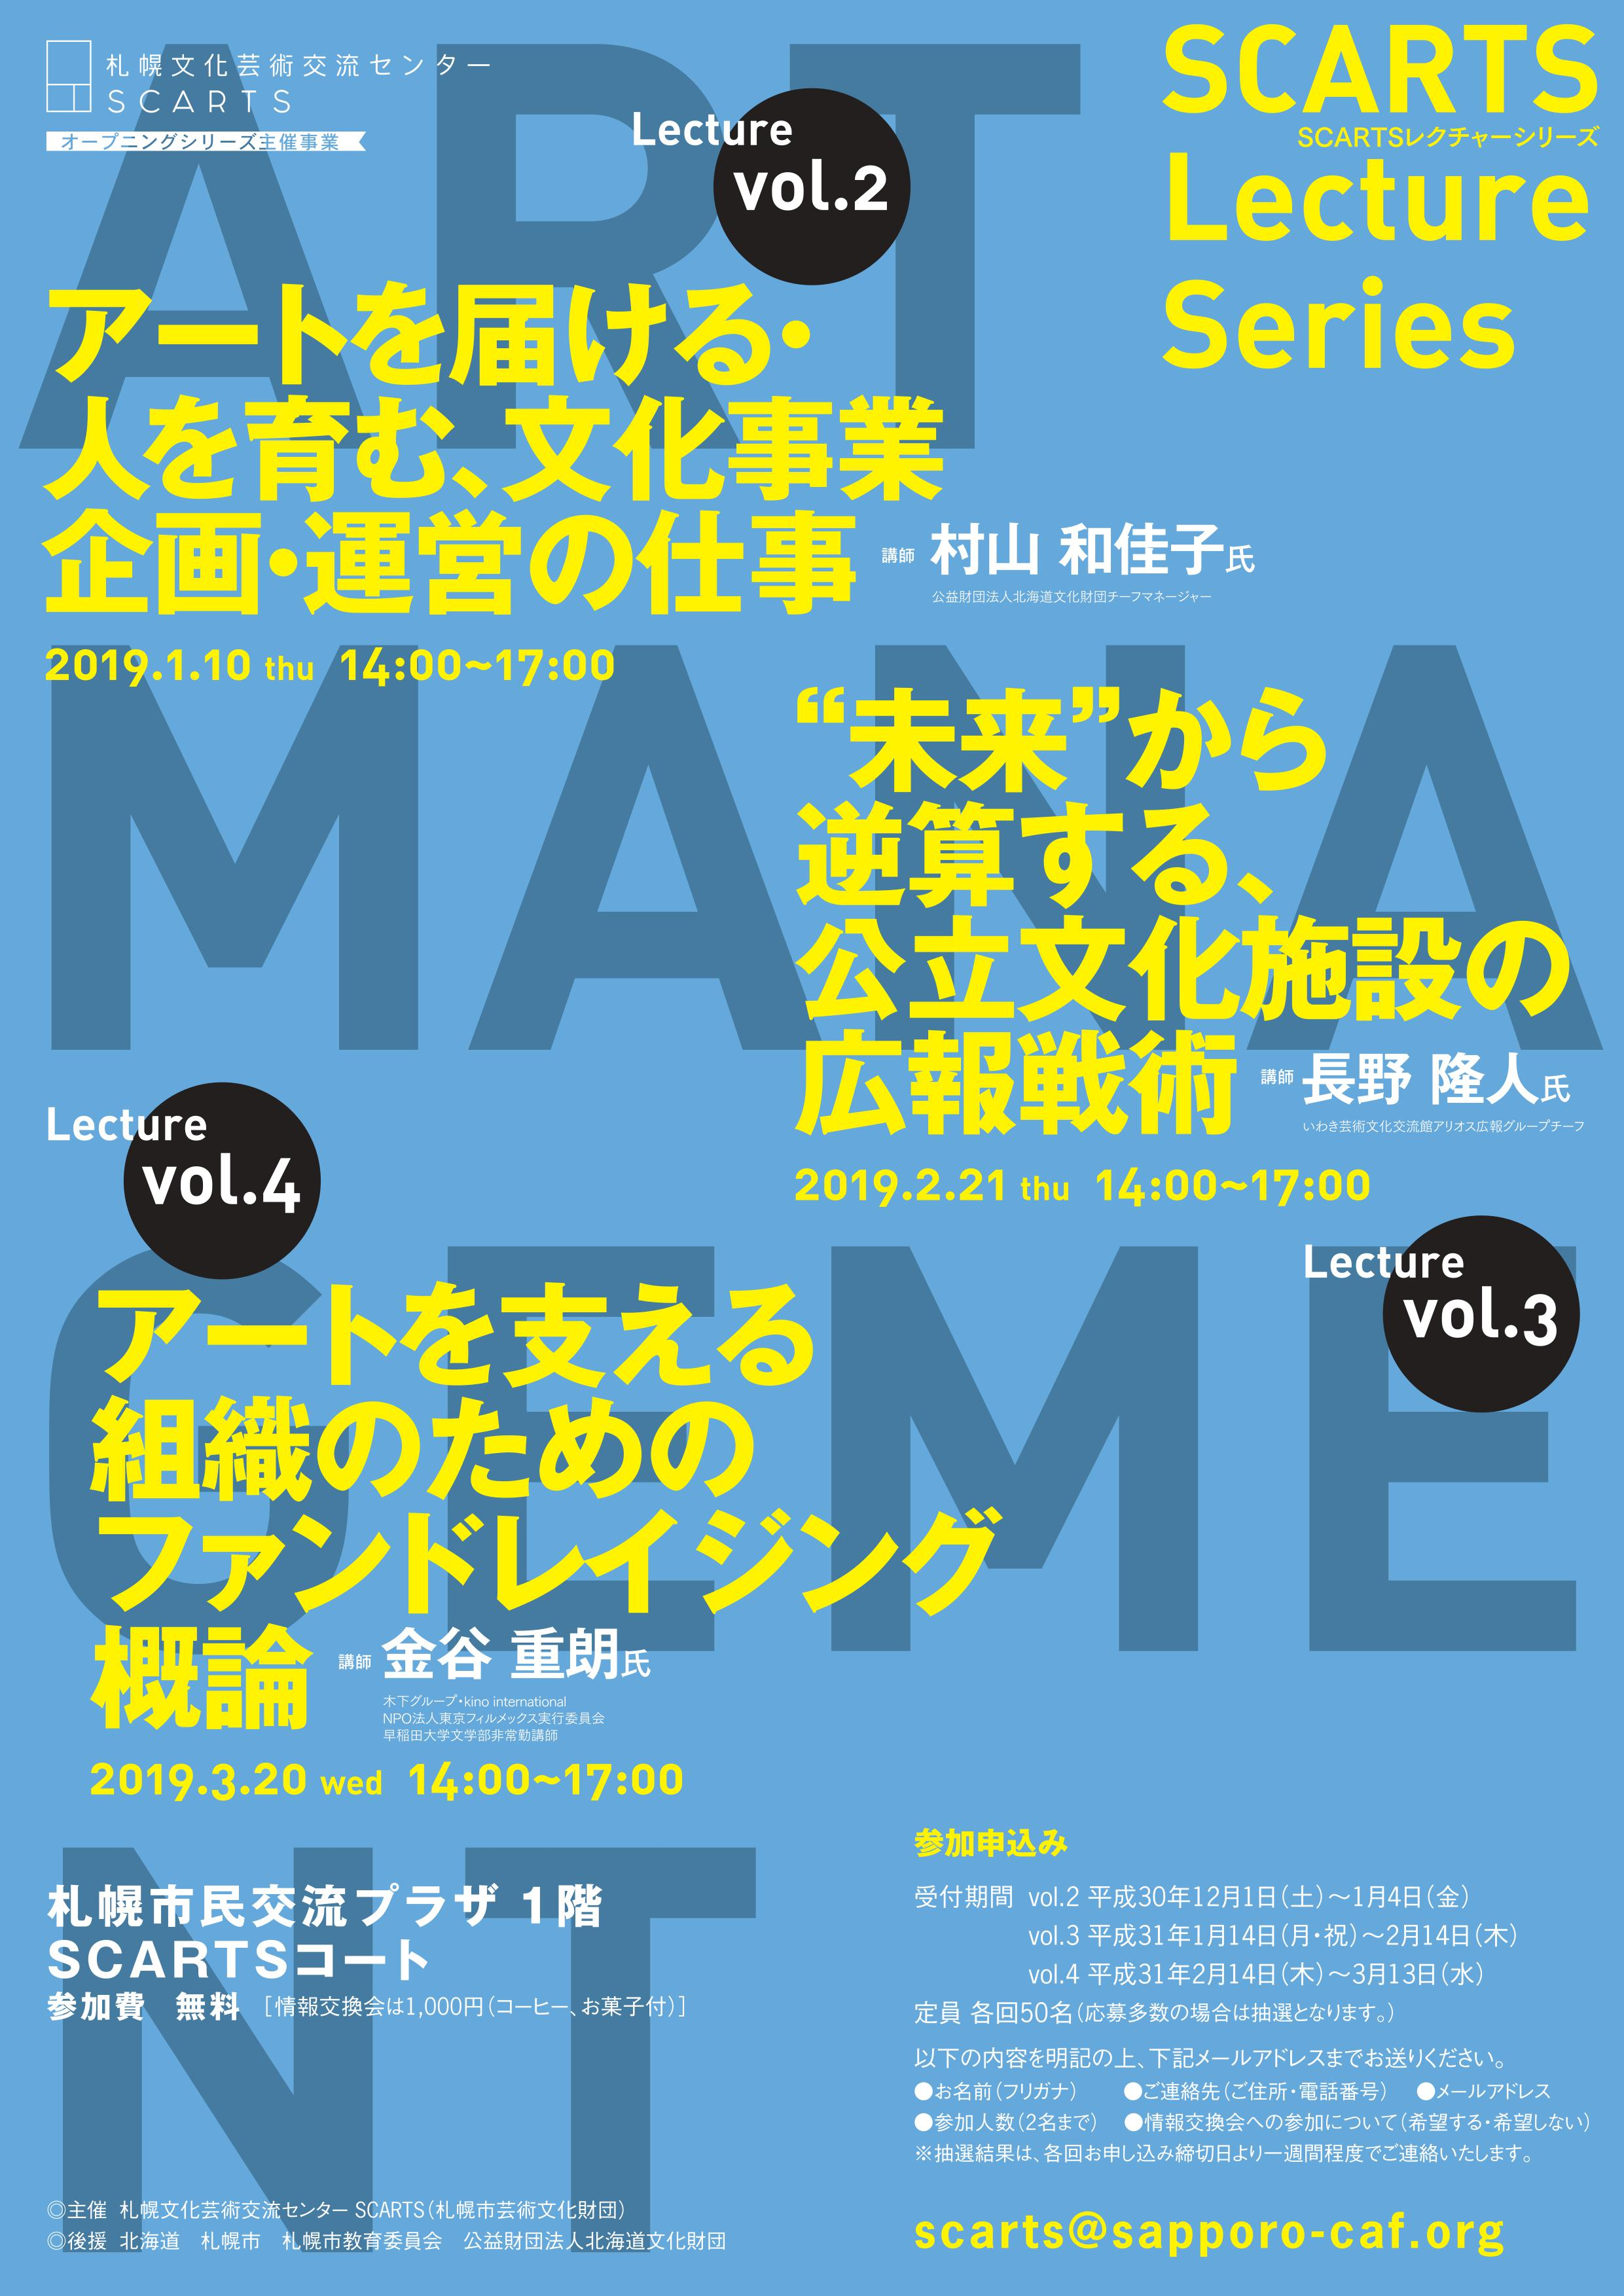 SCARTS Lecture Series Vol. 3 The Future-oriented PR Strategy of a Public Cultural Facility image 2